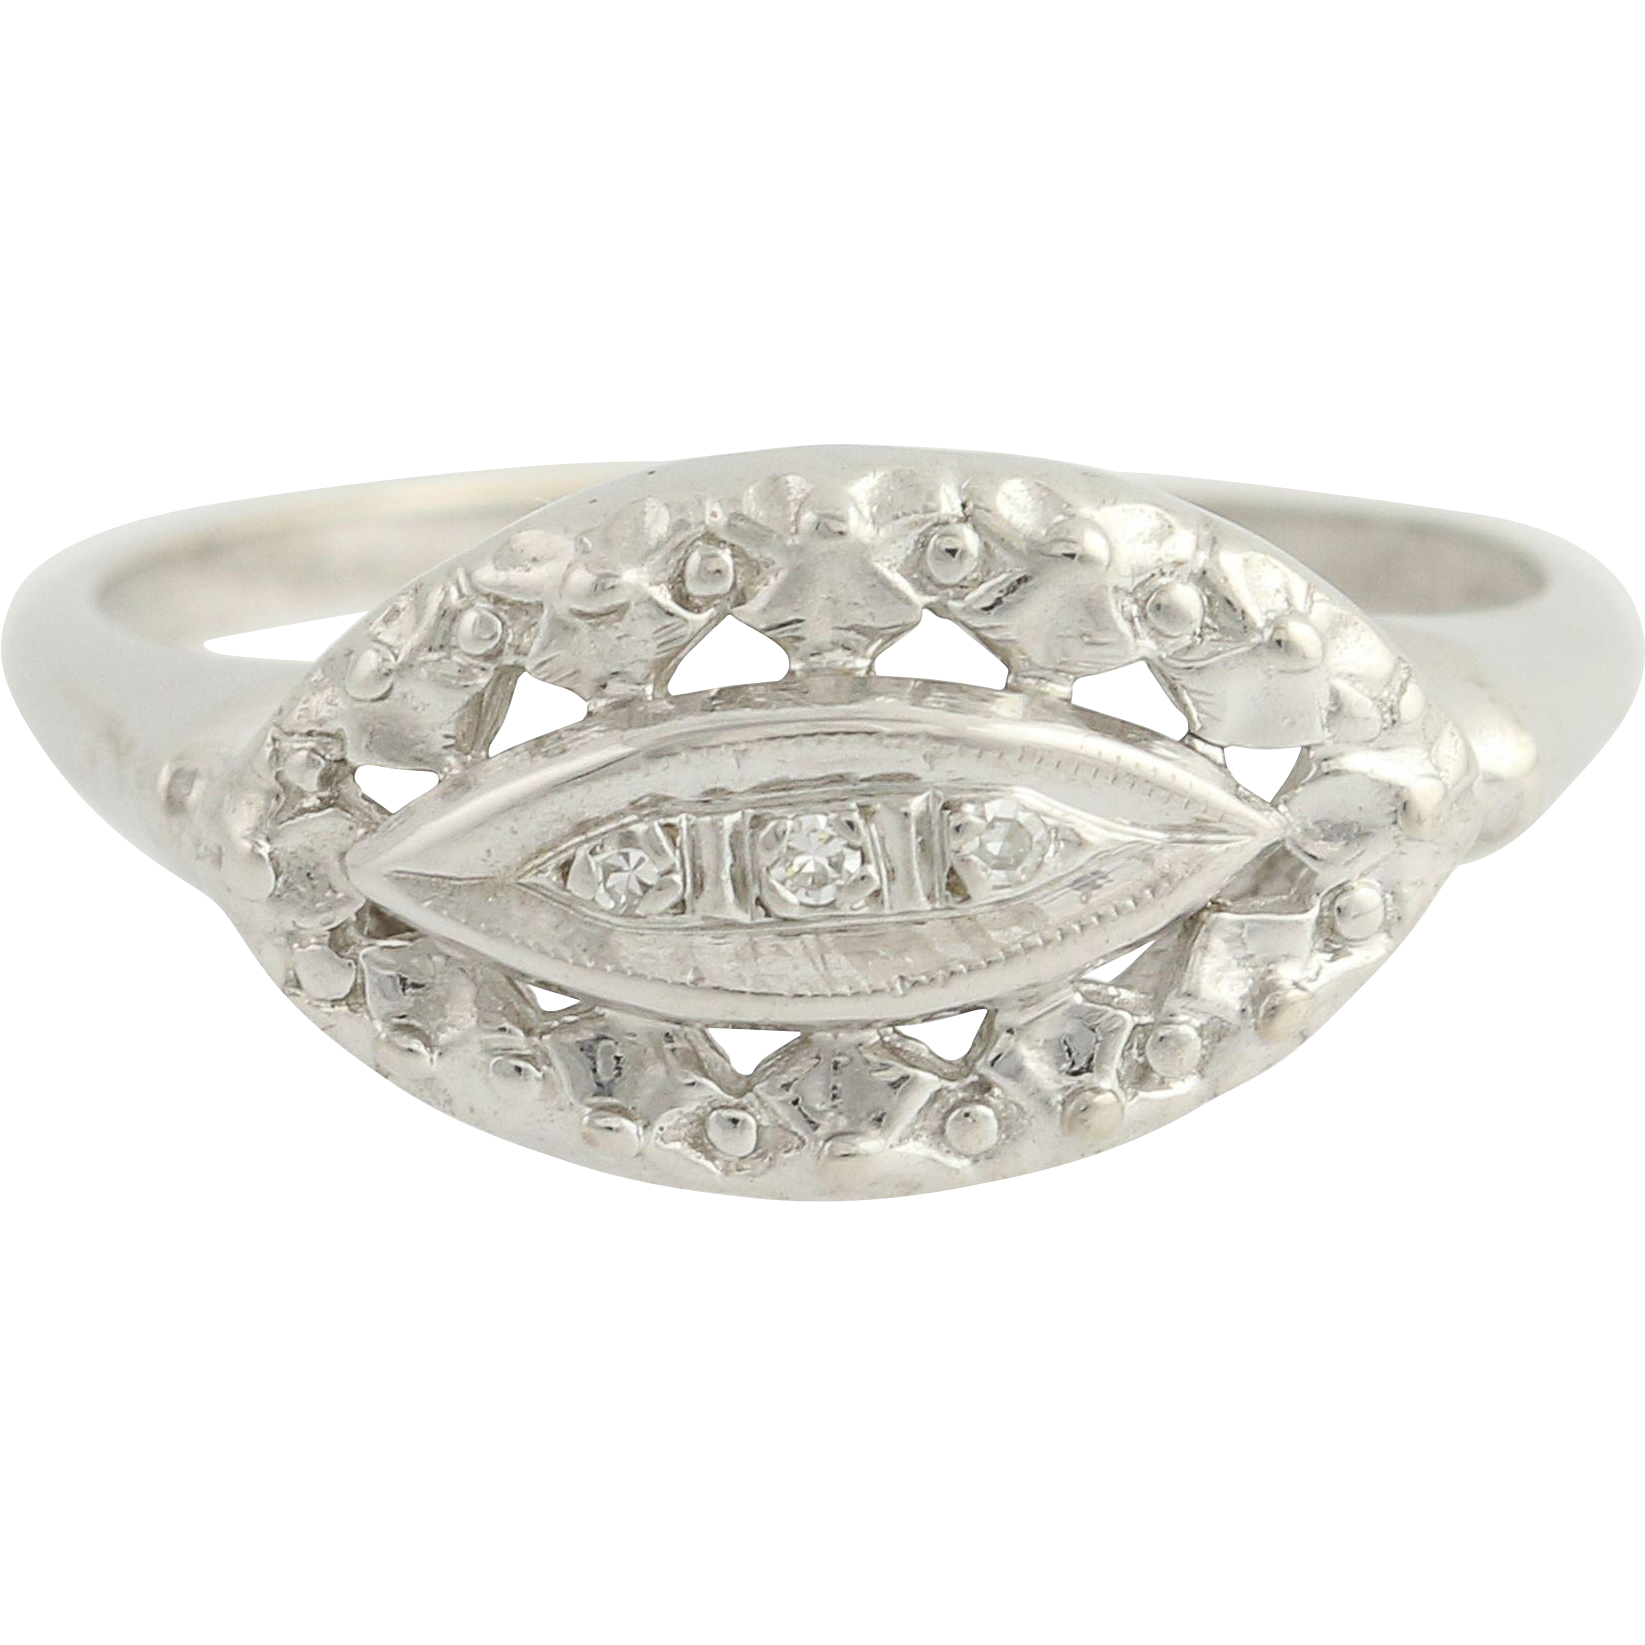 Vintage Diamond-Accented Ring - 10k White Gold Women's .02ctw